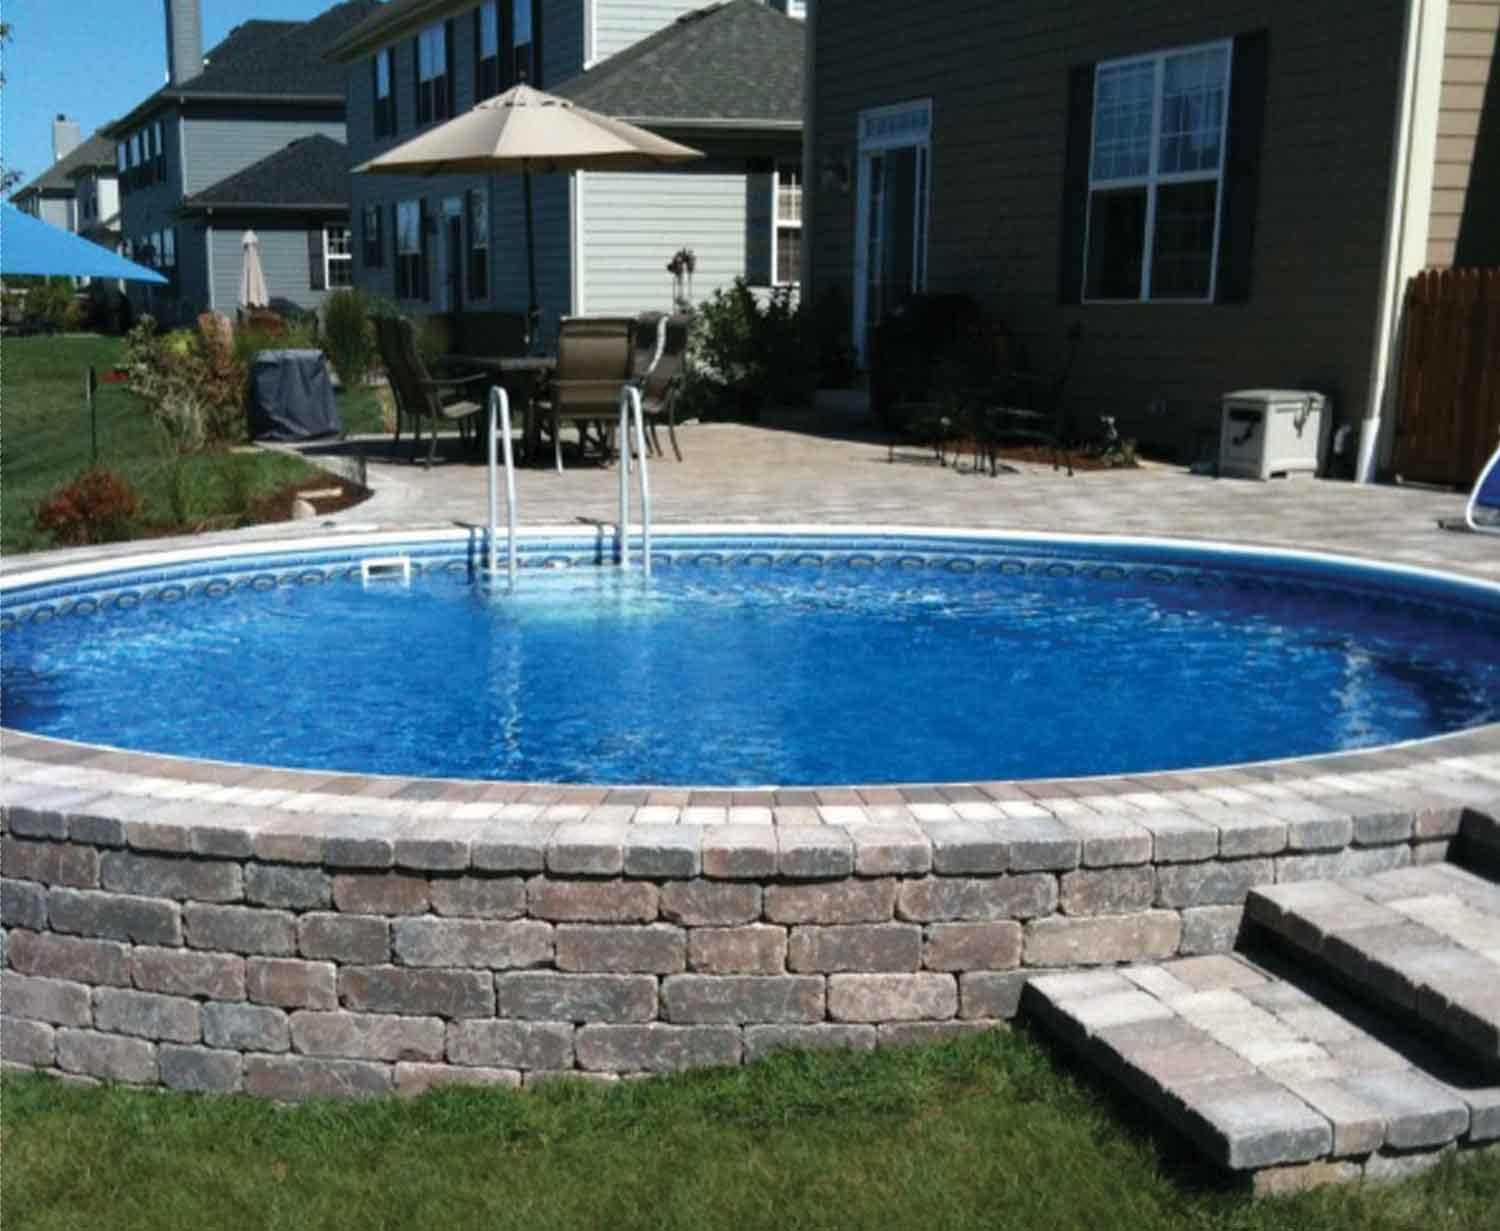 Best ideas about Semi Inground Pools With Deck . Save or Pin Semi Inground Pool Decks Now.